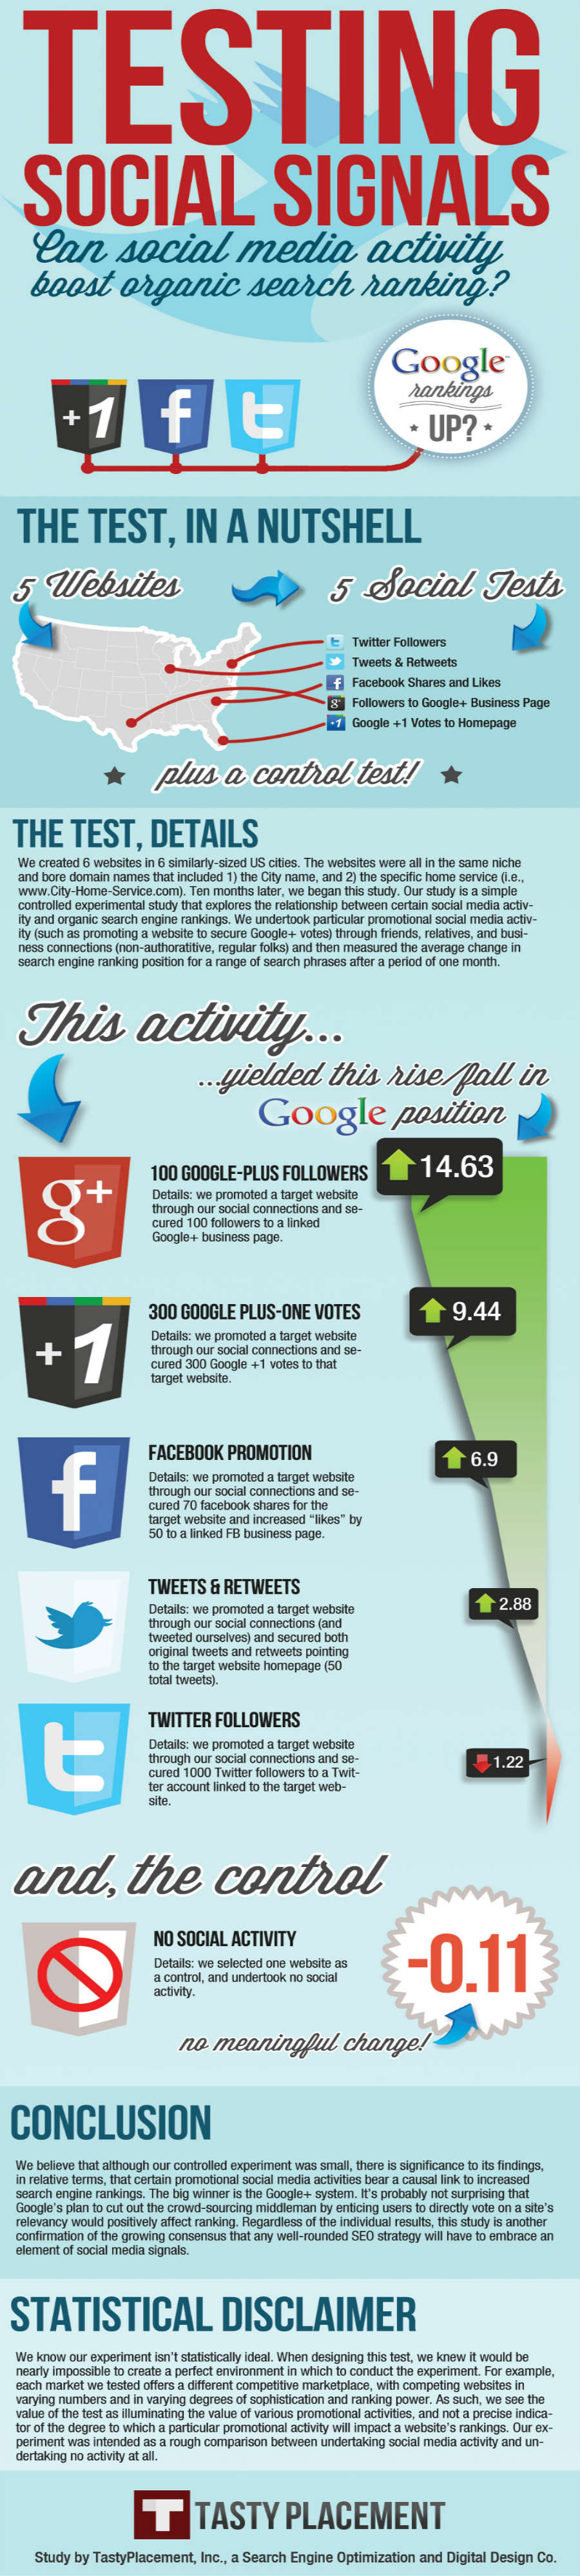 The Organic Search Benefits to Social Media {Infographic}